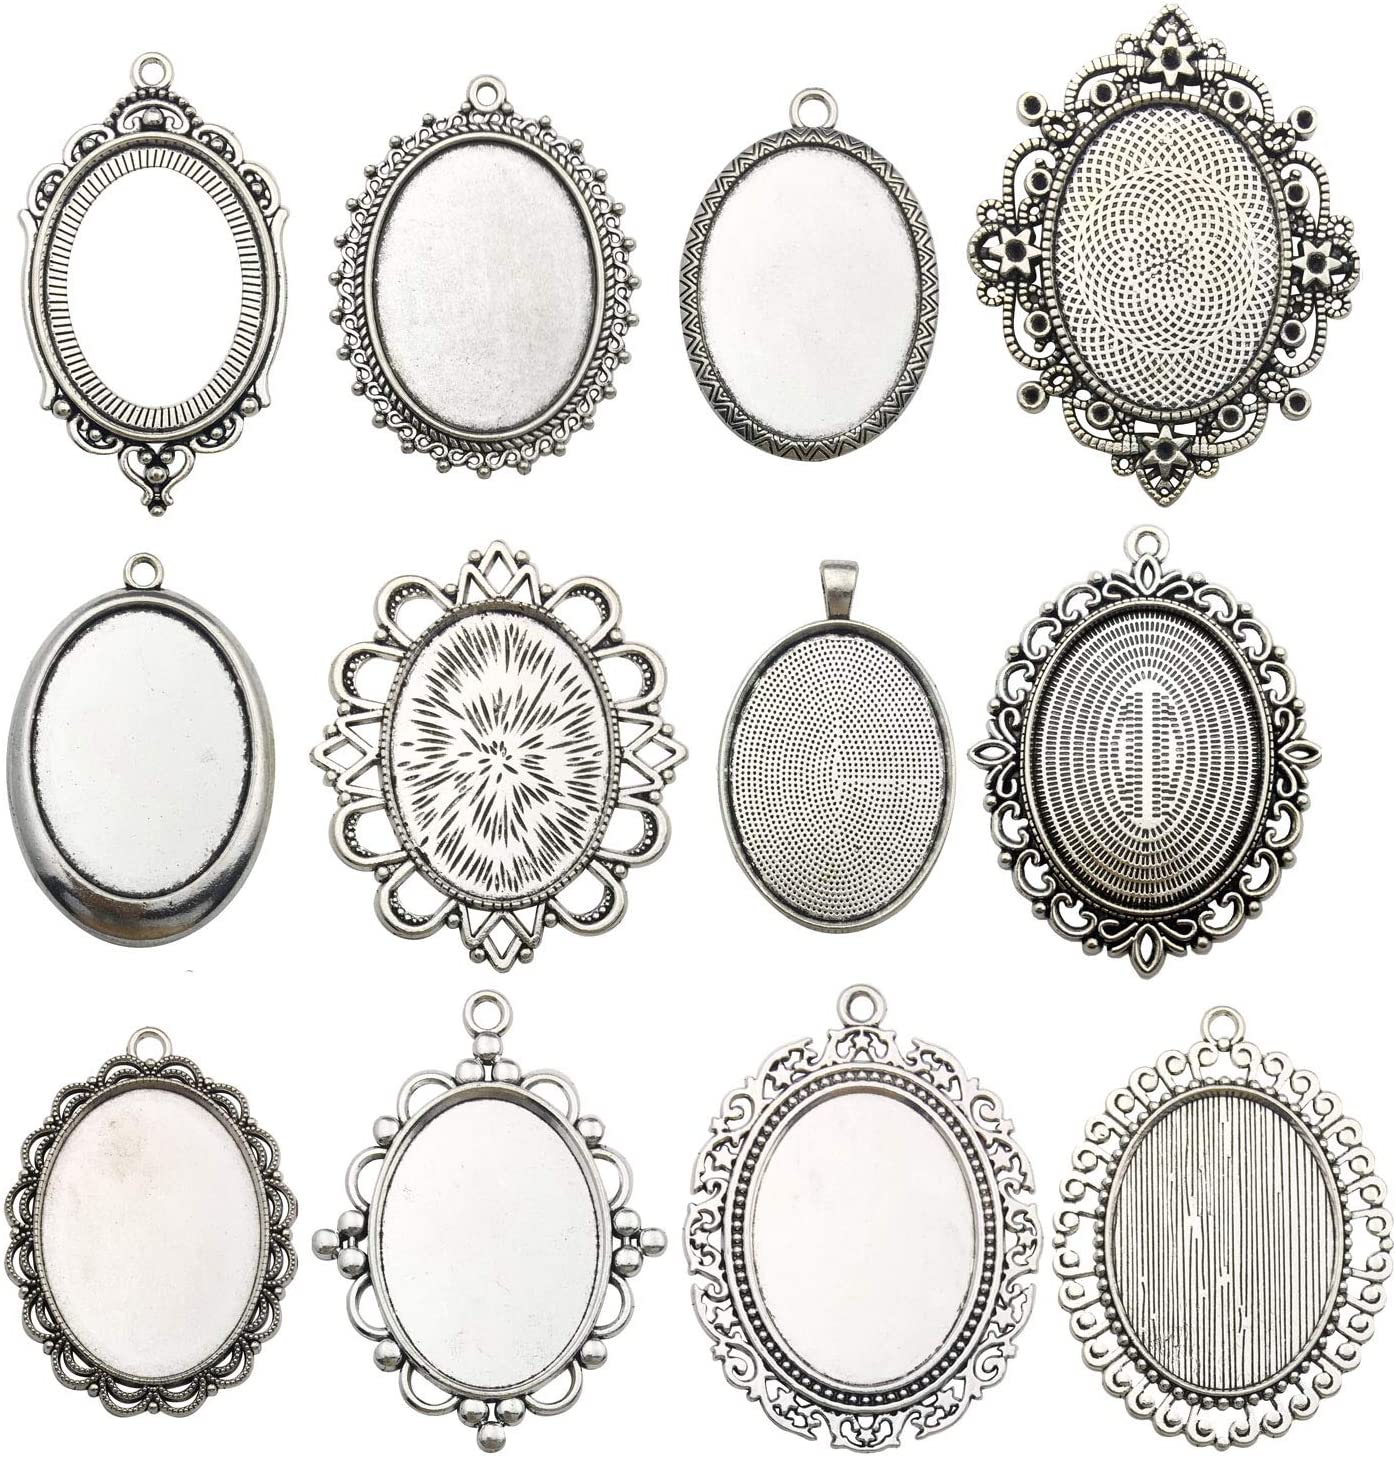 n. 18 4 x  Antique silver cabochon pendant setting fits 25mm glass